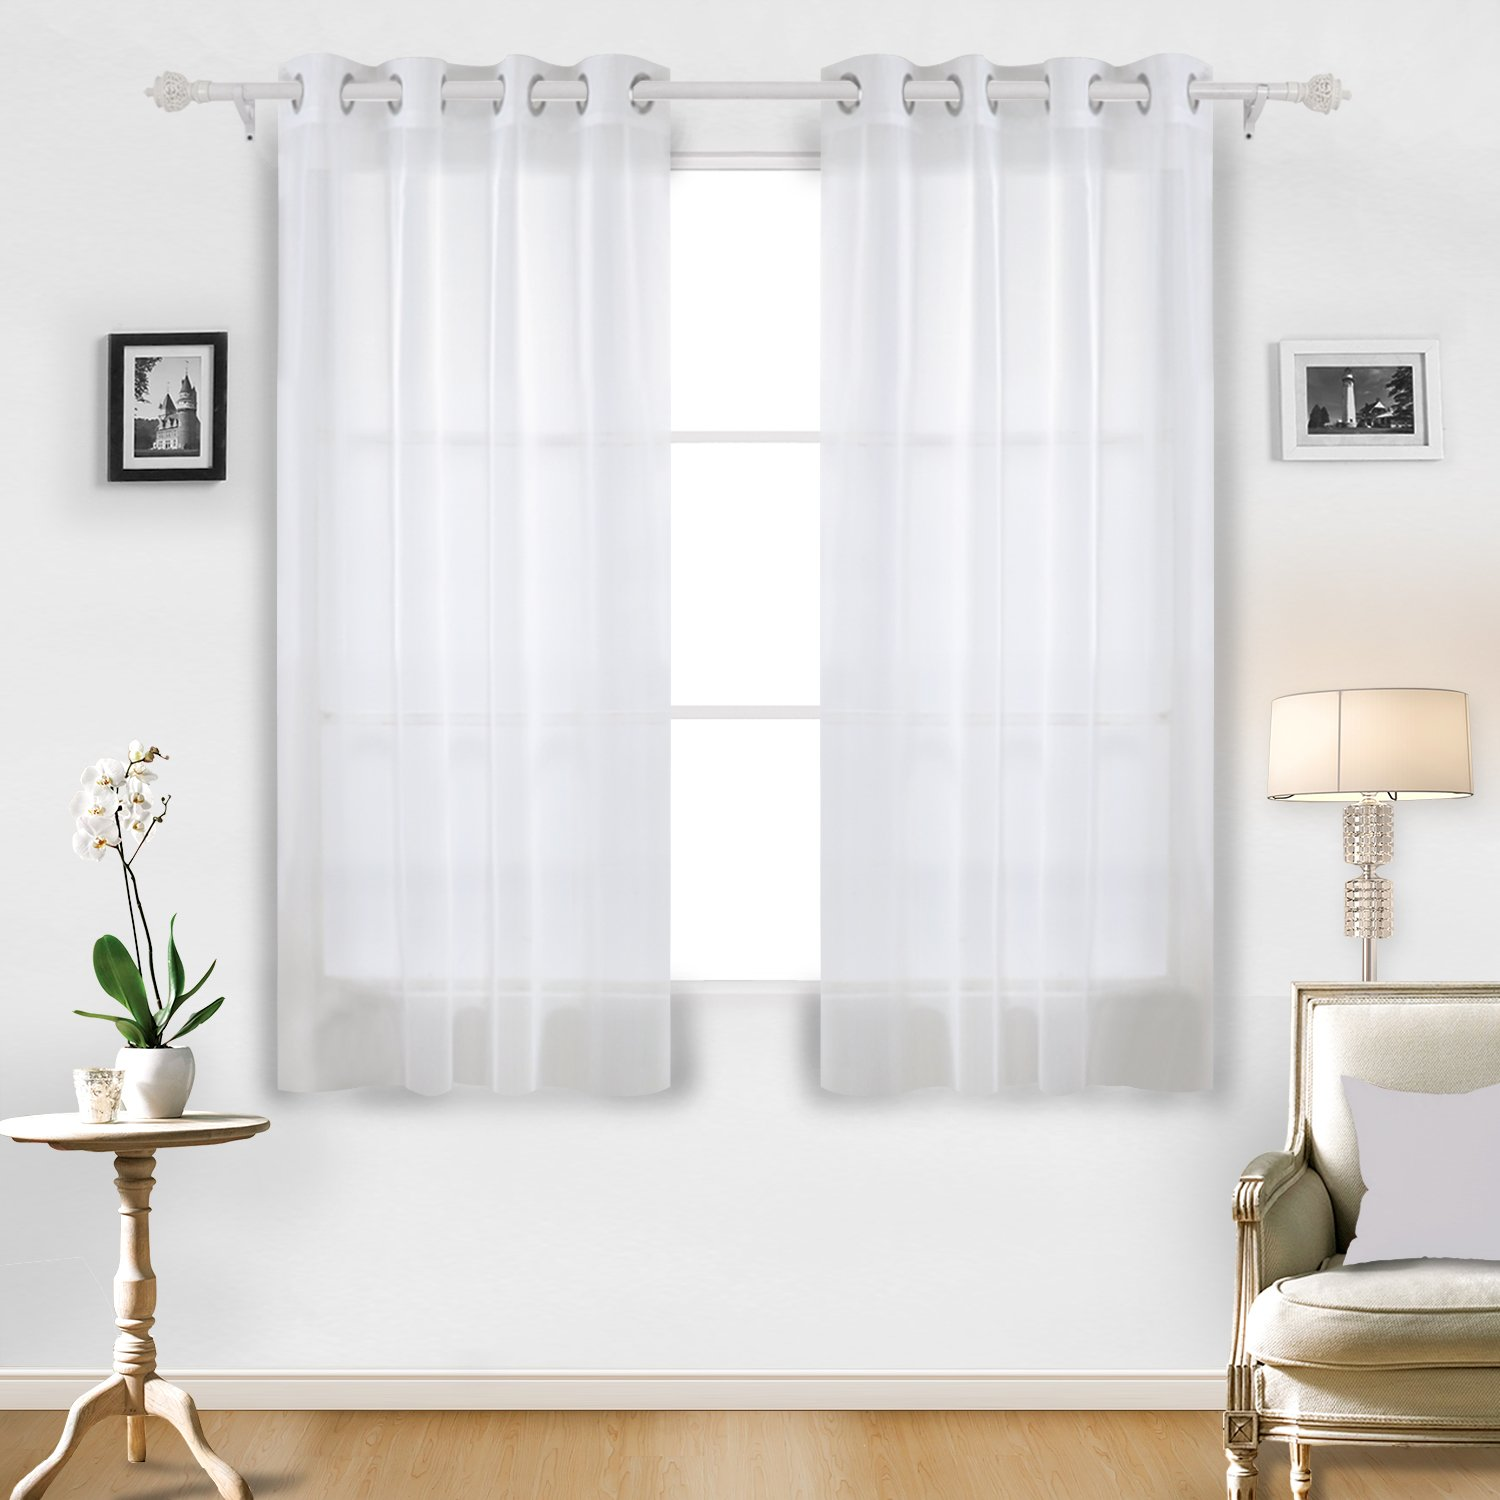 Buy Deconovo Home Decorations Sheer White Curtains Grommet Curtains Voile Curtains Delicate Sheer Curtains For Dining Room 52w X 63l Inch White 2 Drapes In Cheap Price On Alibaba Com